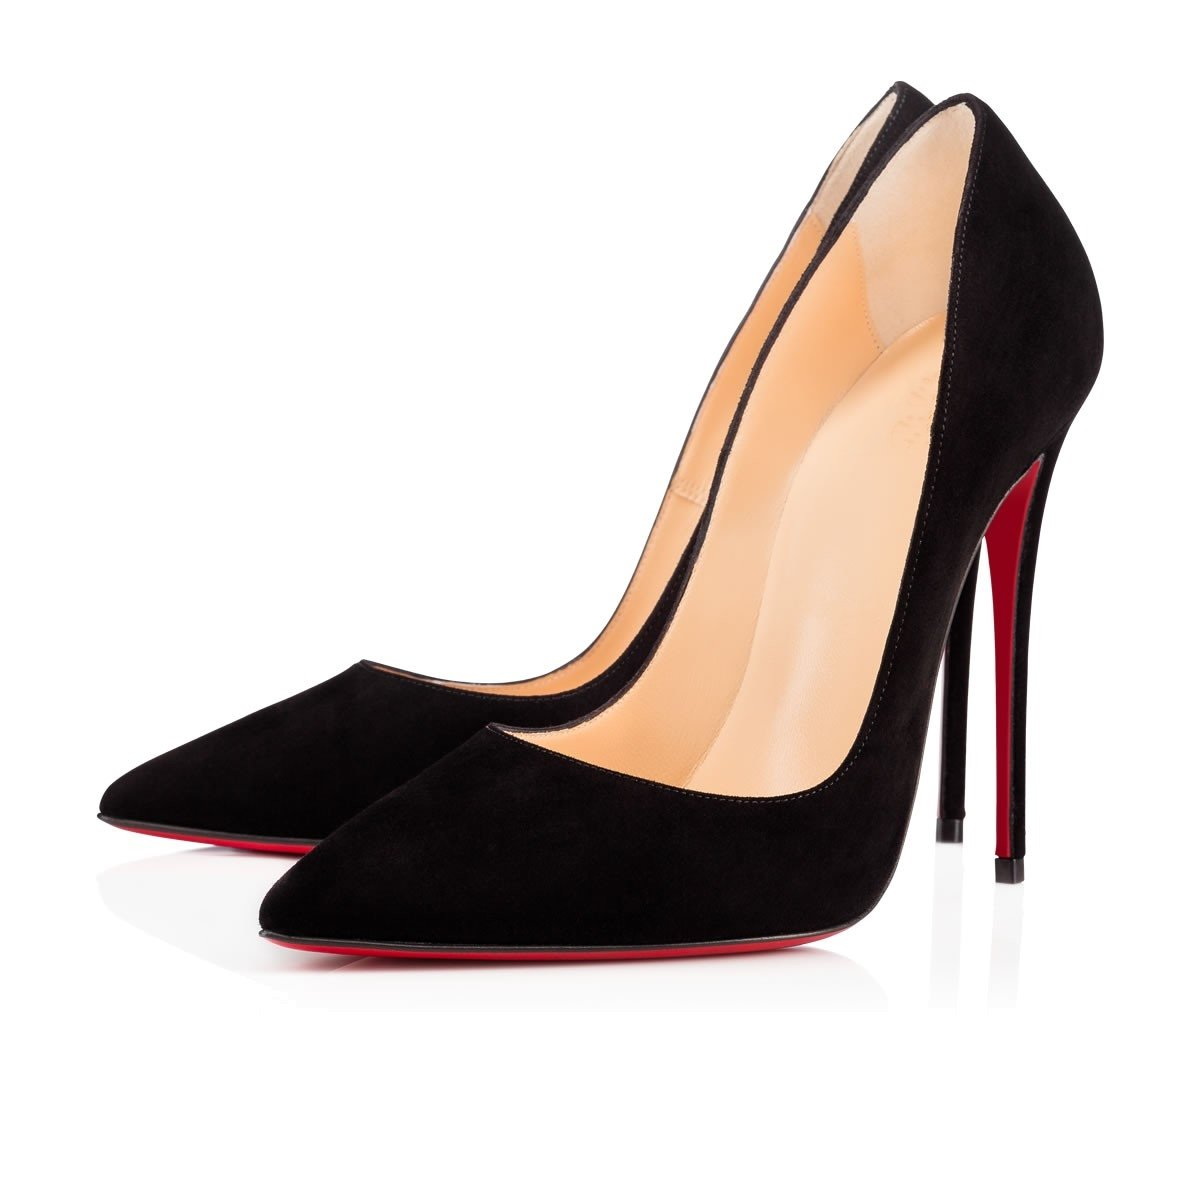 Chris-T Womens Formal Pointed Toe Heel Pumps Basic Shoes High Heel Toe Stilettos Sexy Slip On Dress Shoes Size 4-15 US B07F37L39Z 13 B(M) US Black Suede/Red S0le(bottom) 20b65b